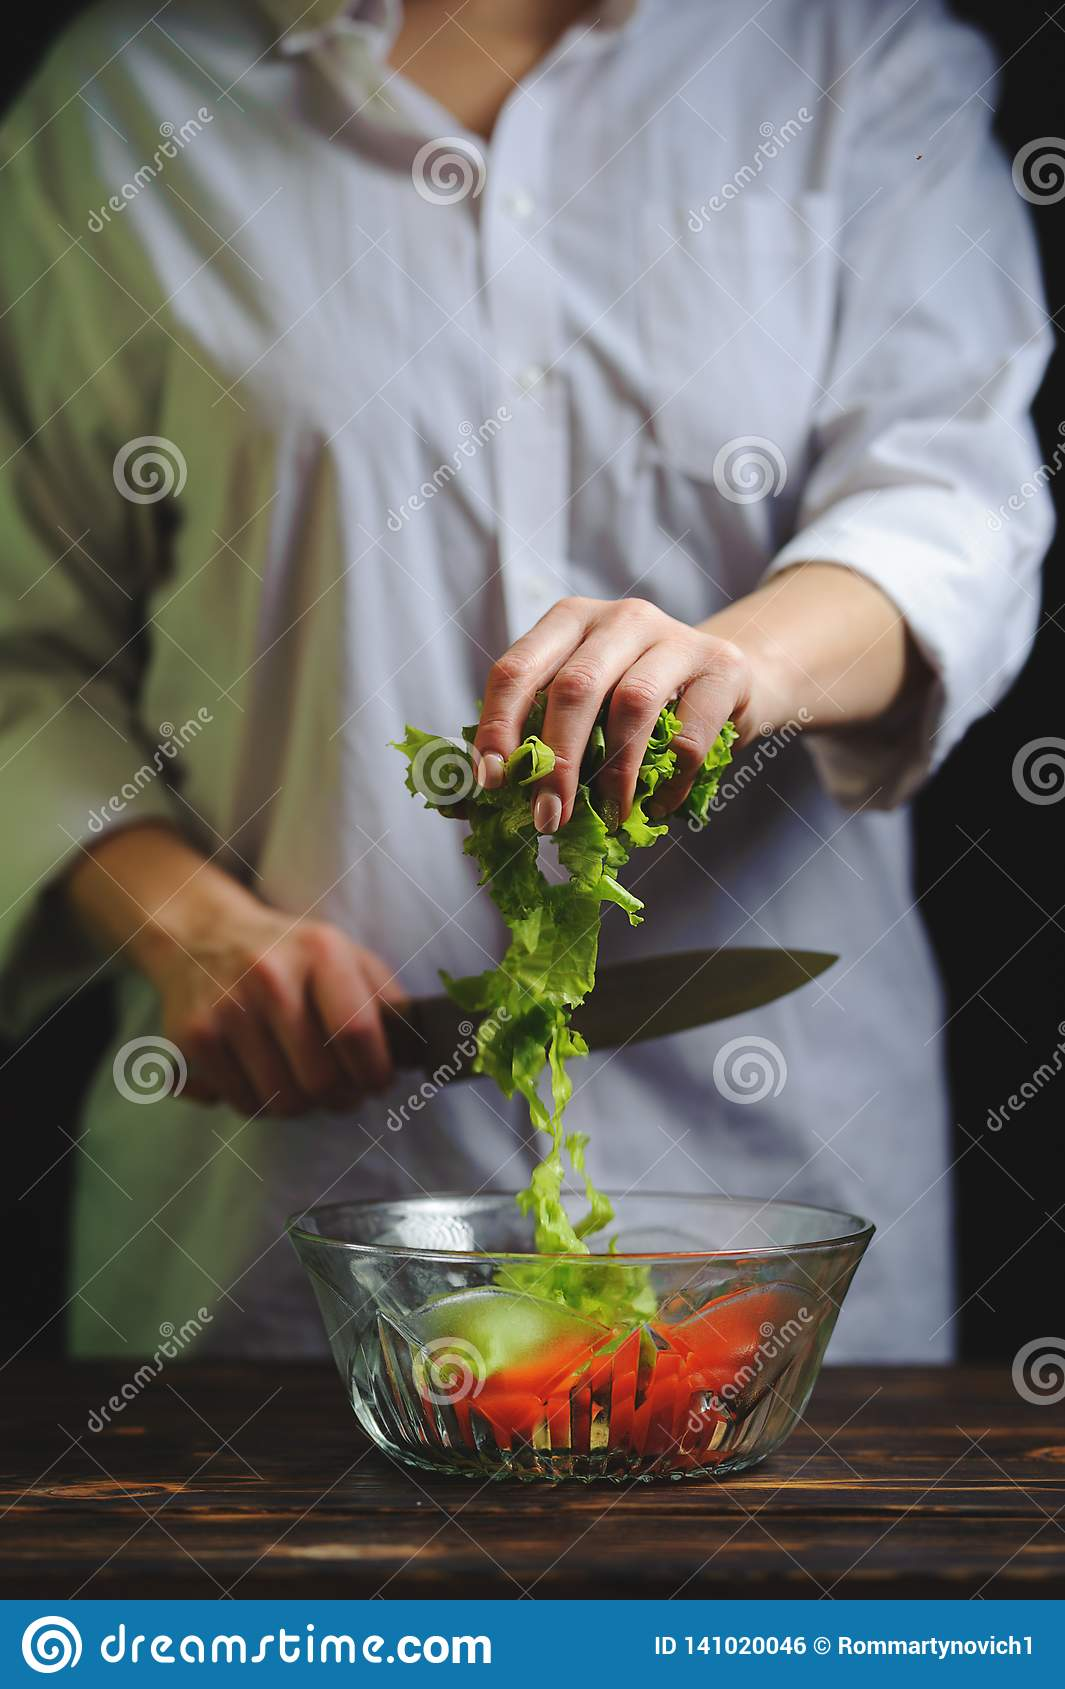 The Chef Prepares A Vegetarian Vegetable Salad Stock Photo Image